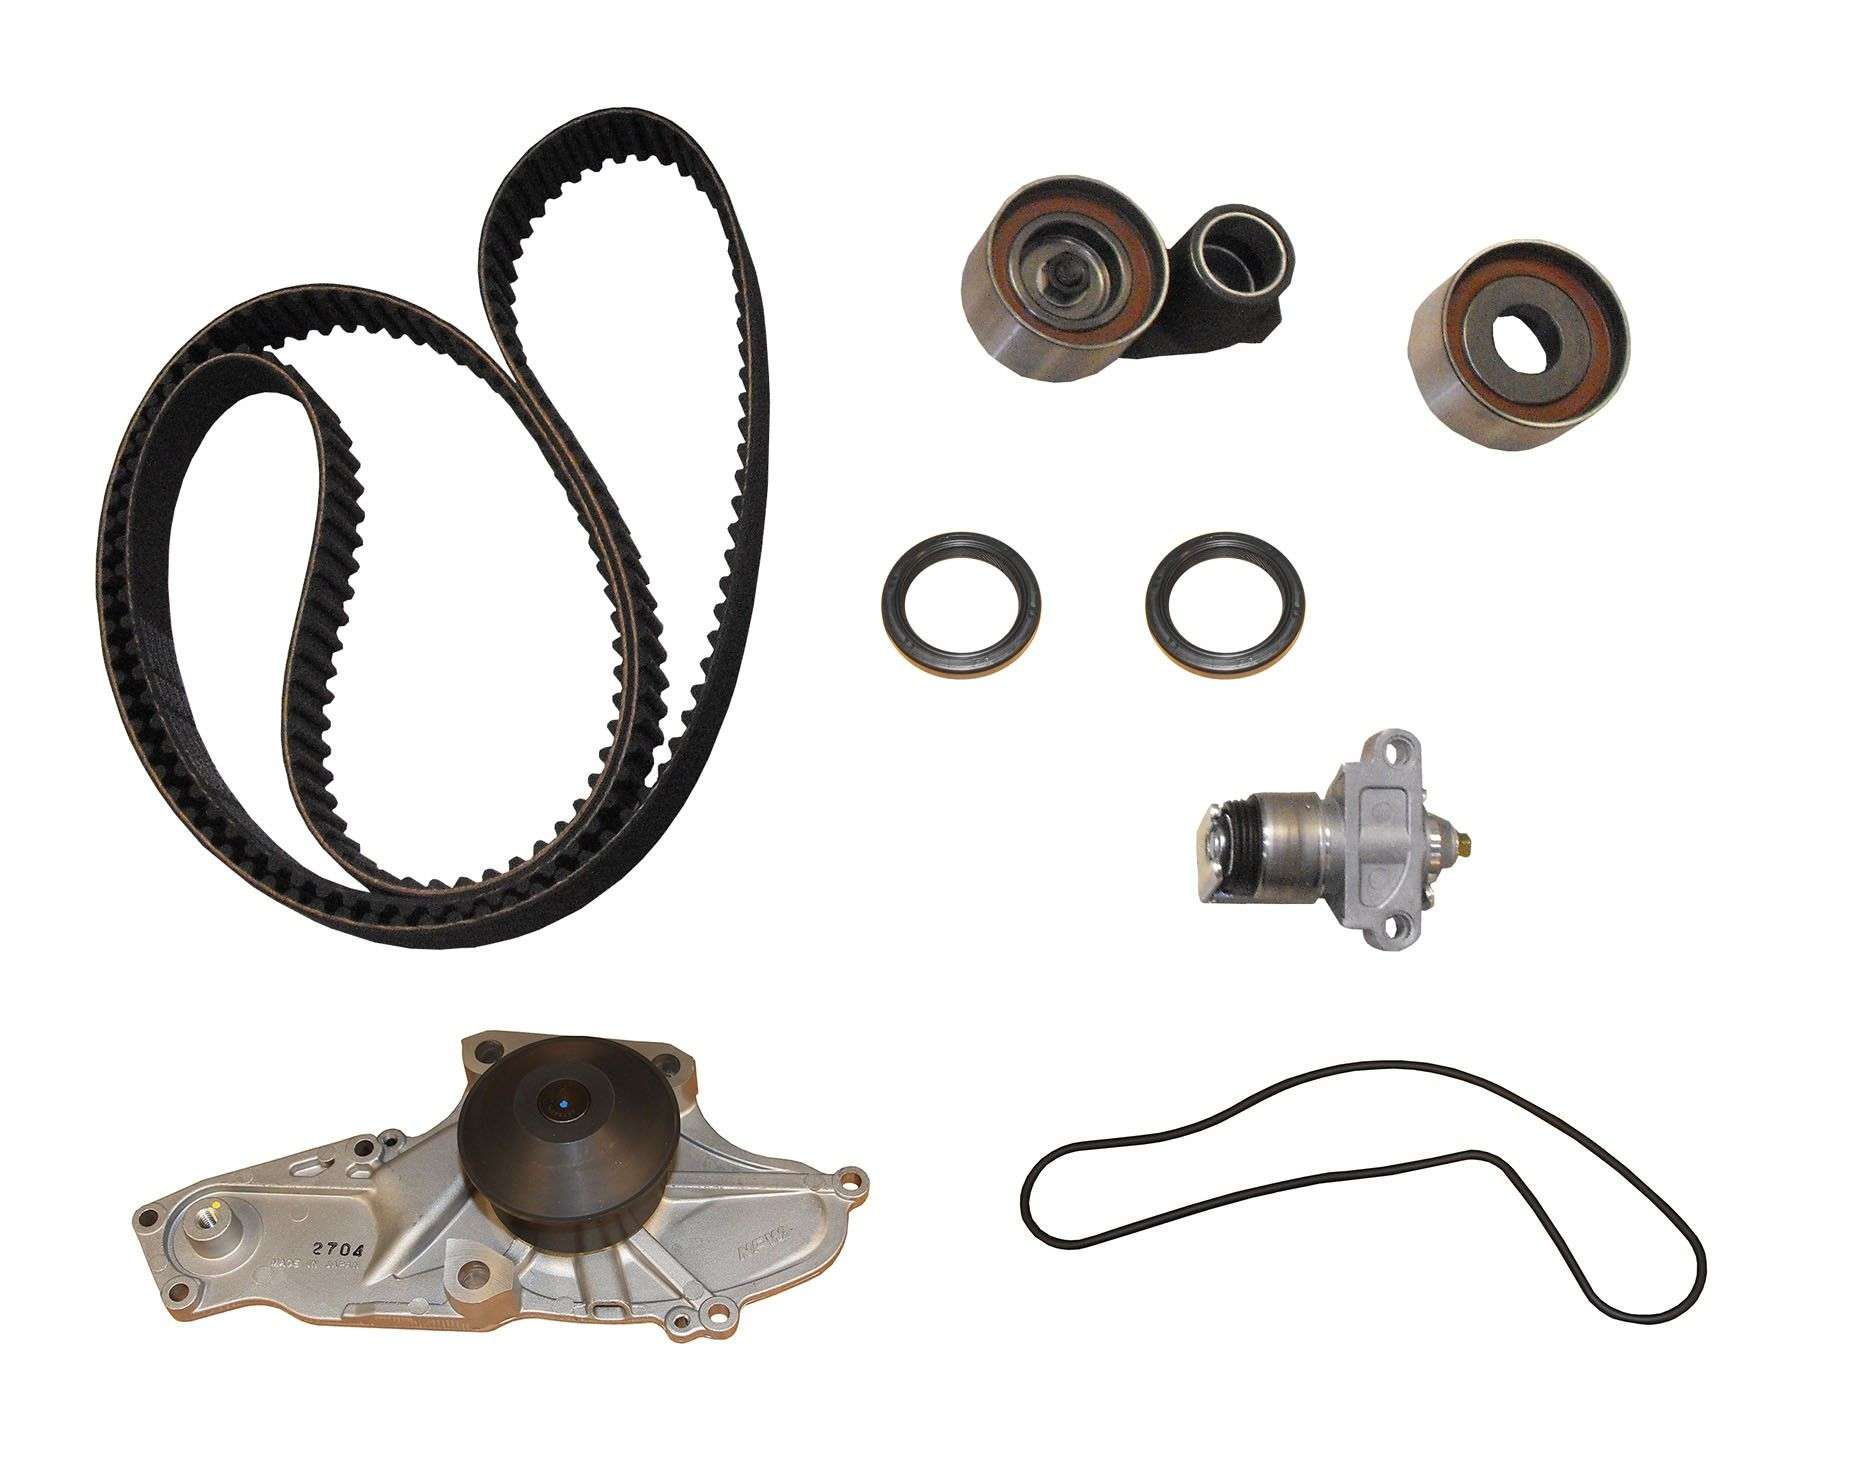 Honda Accord Engine Timing Belt Kit With Water Pump Replacement Tensioner 2002 6 Cyl 30l Crp Pp286lk2 Pro Series Plus Contitech Use Until Inventory Is Depleted